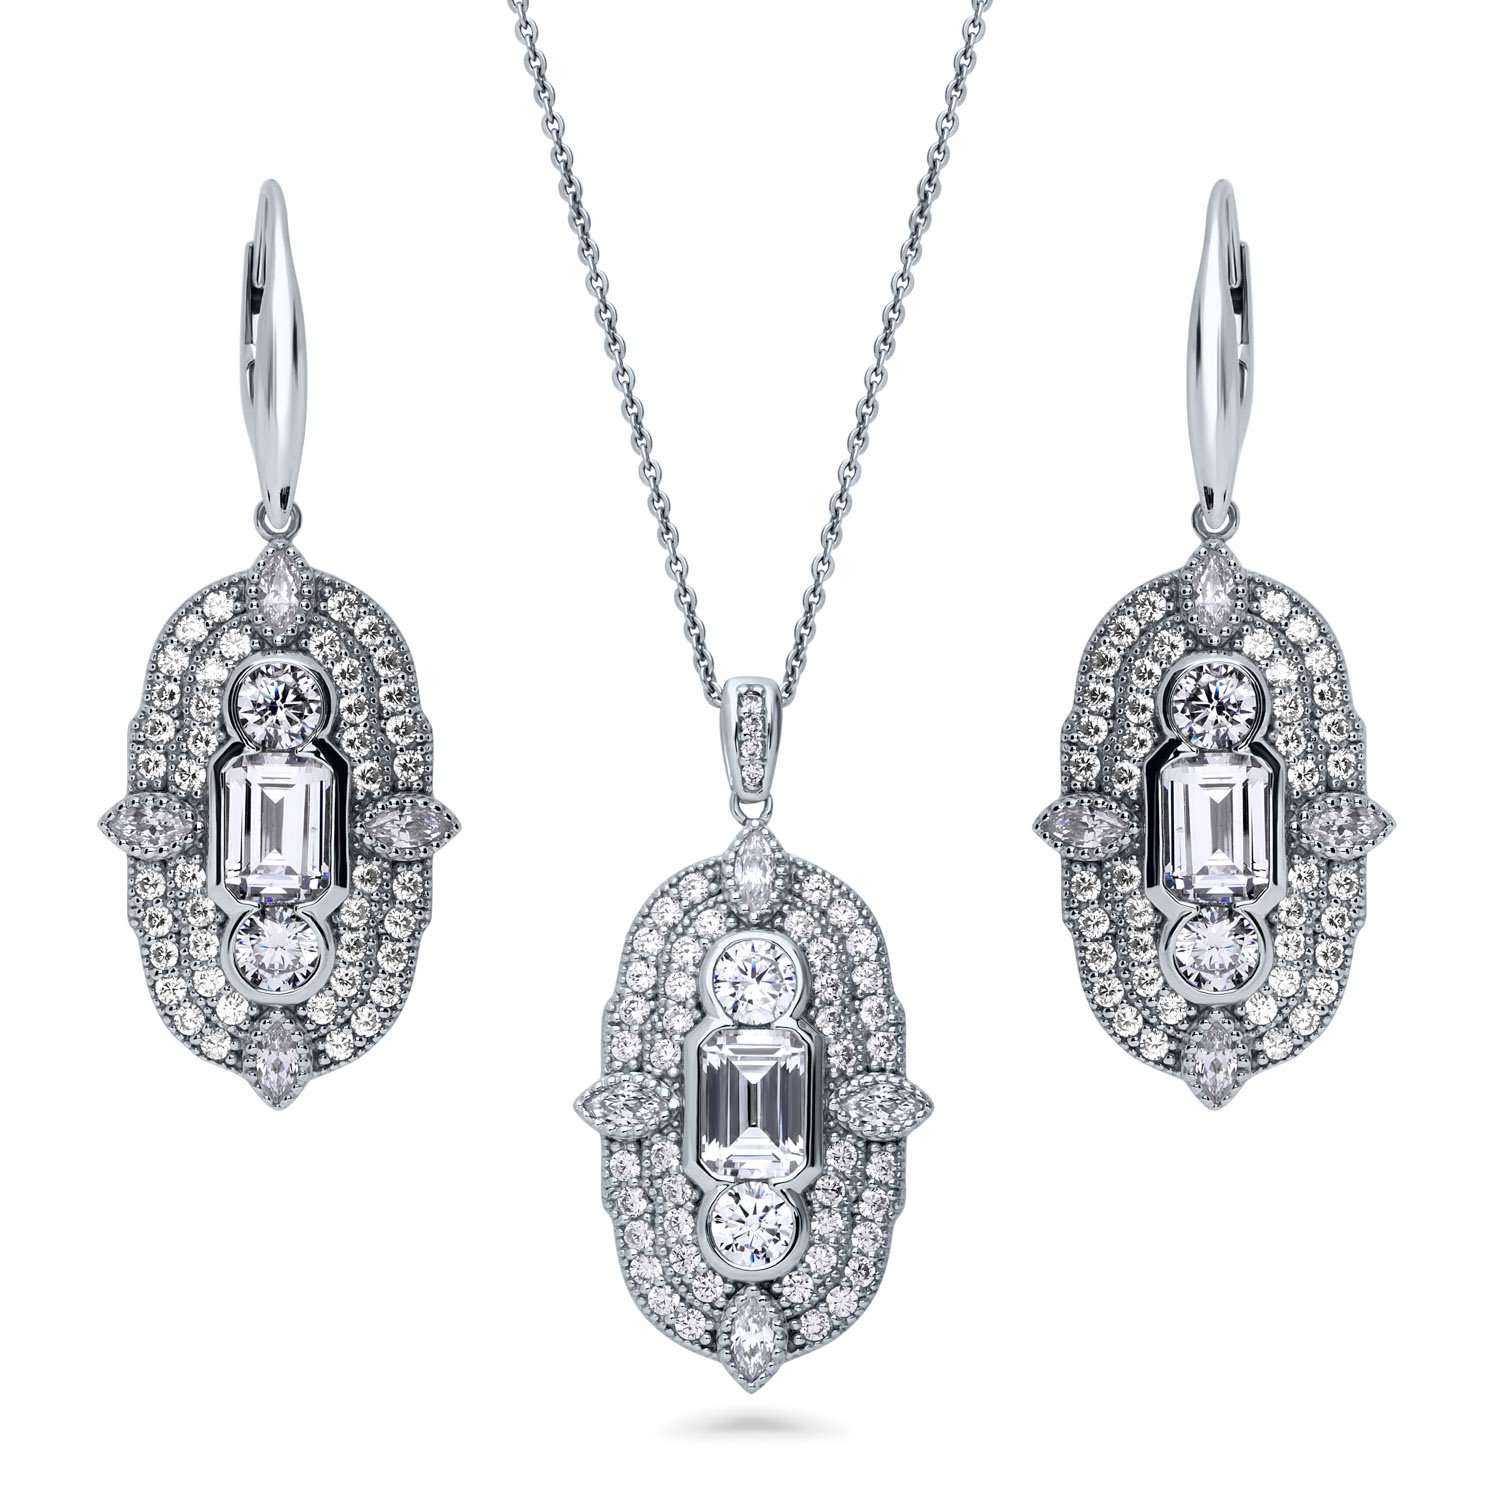 BERRICLE Rhodium Plated Sterling Silver Cubic Zirconia CZ Art Deco Necklace and Earrings Set